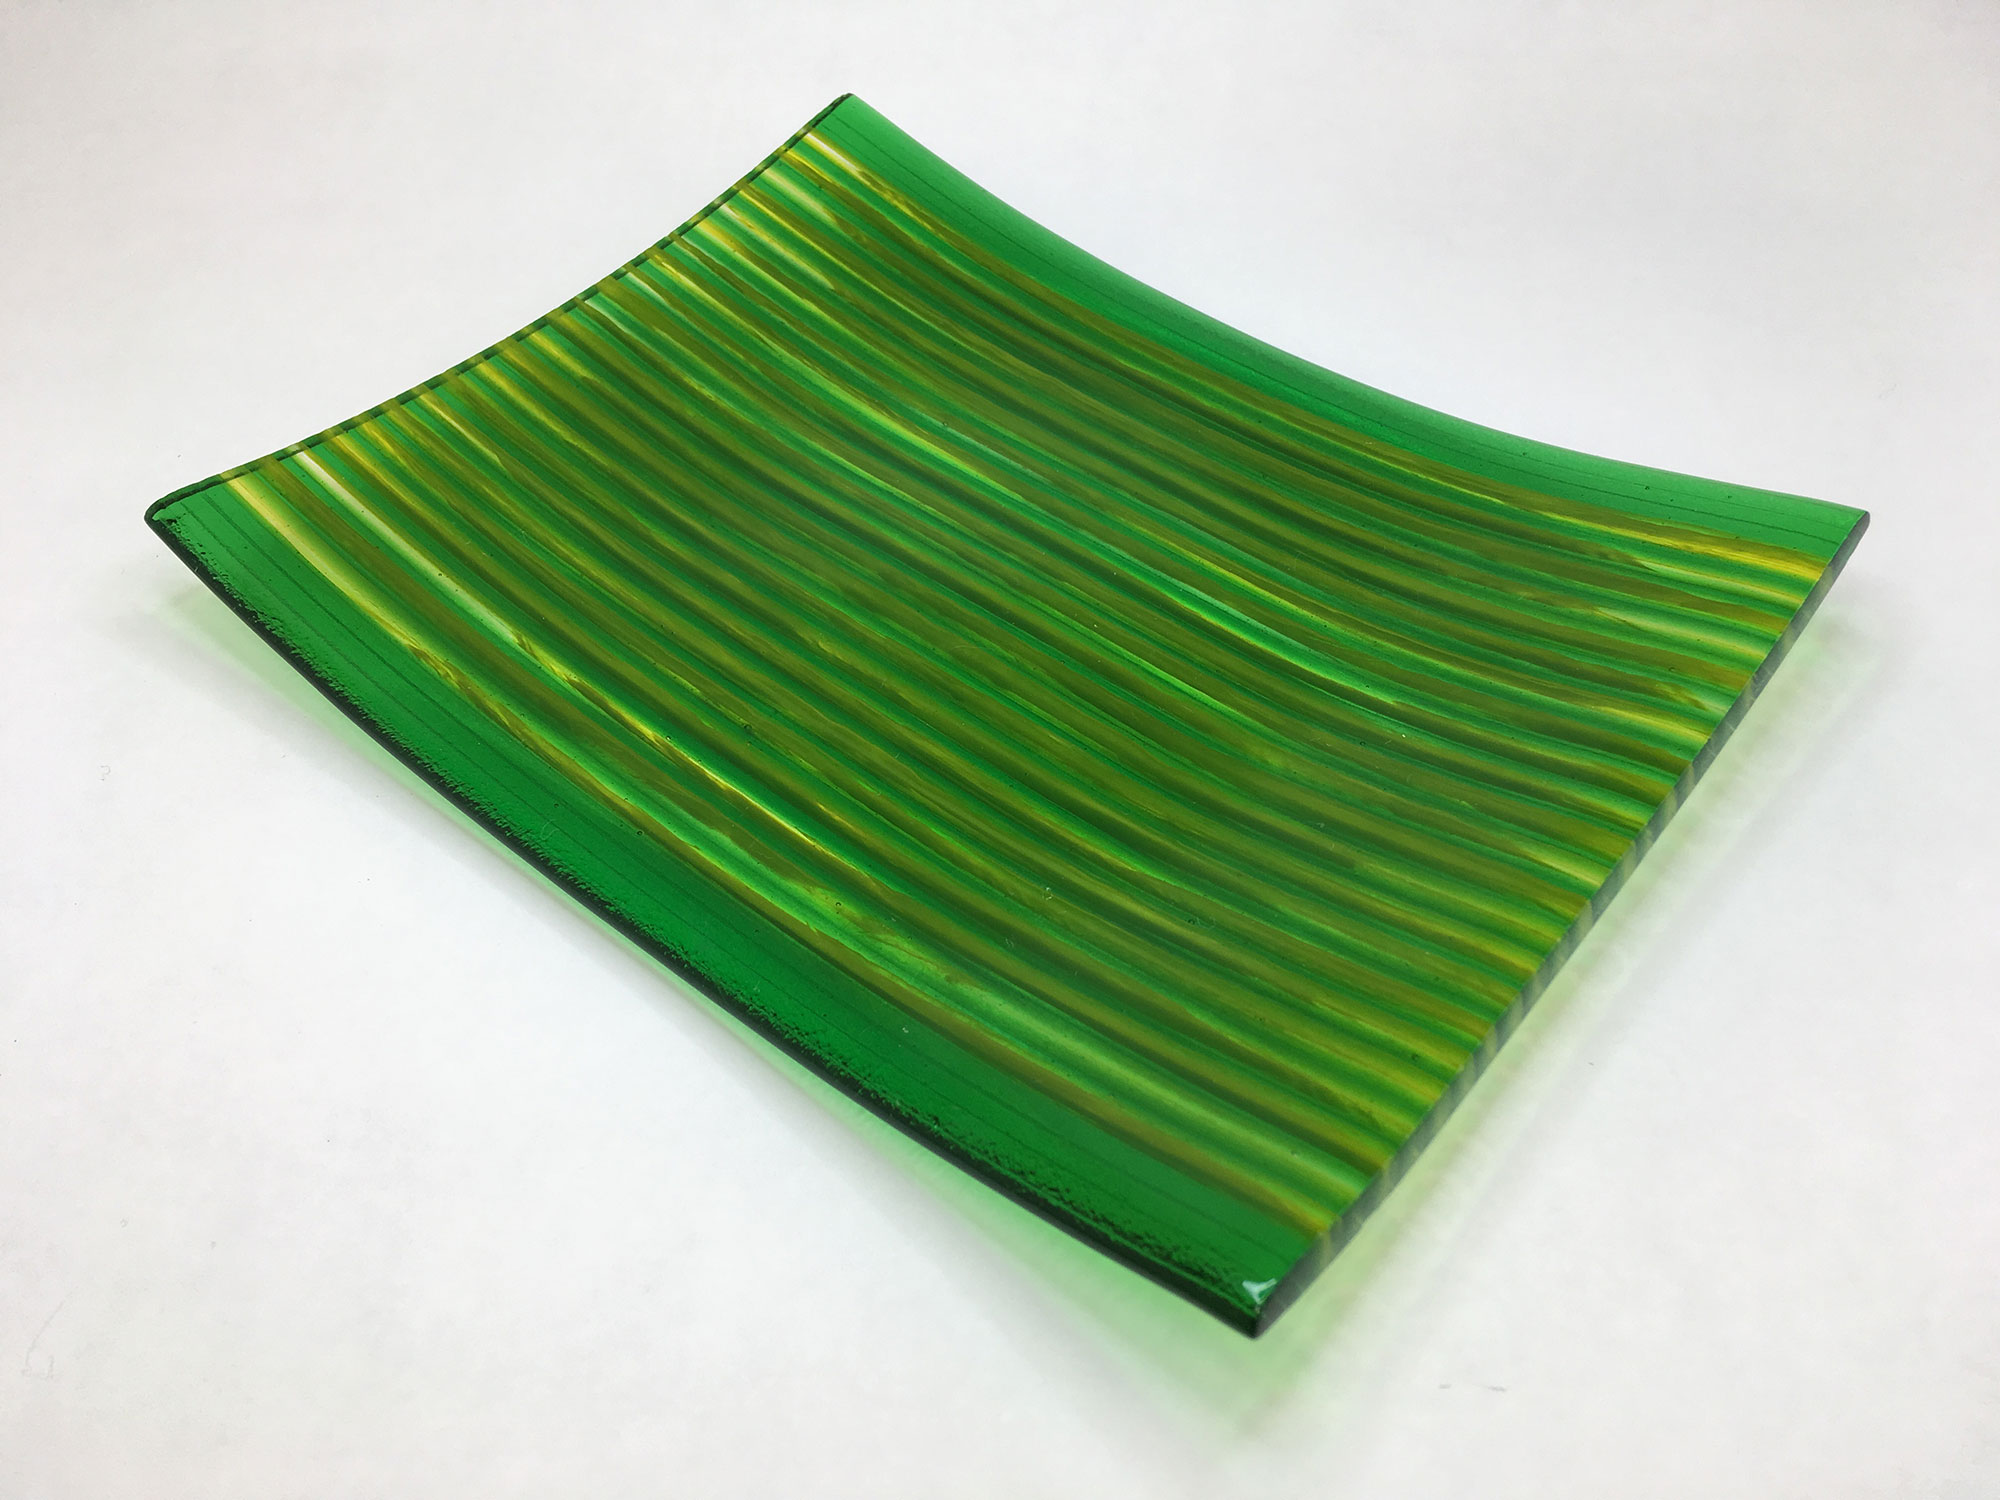 Strip Cut Green and Yellow Square Plate